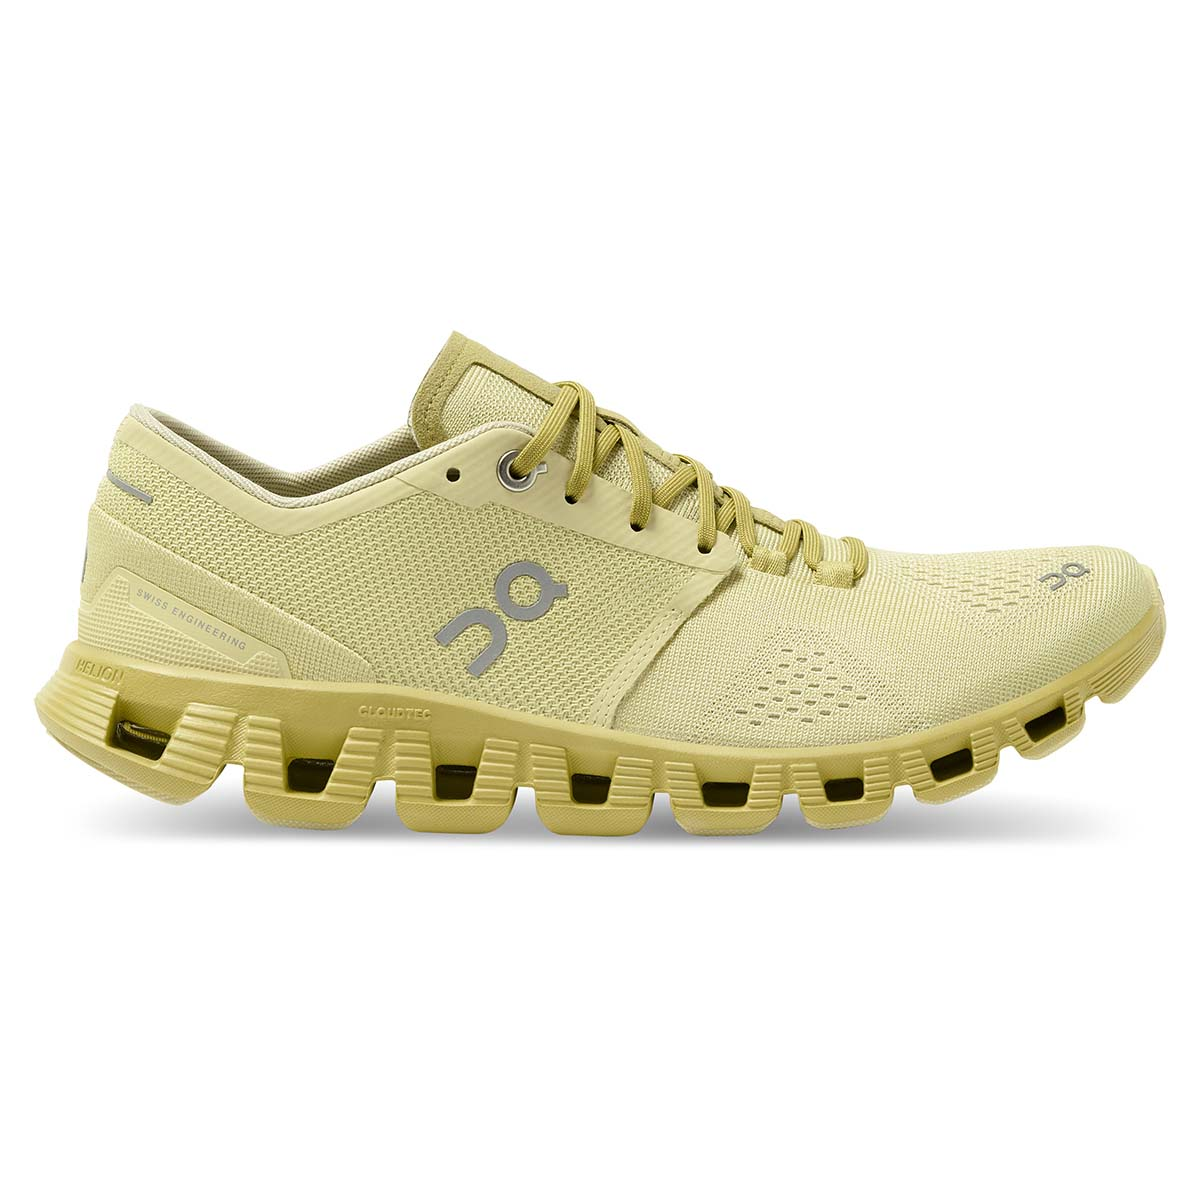 Women's On Cloud X 2.0 Running Shoe - Color: Glade/Citron - Size: 5 - Width: Regular, Glade/Citron, large, image 1